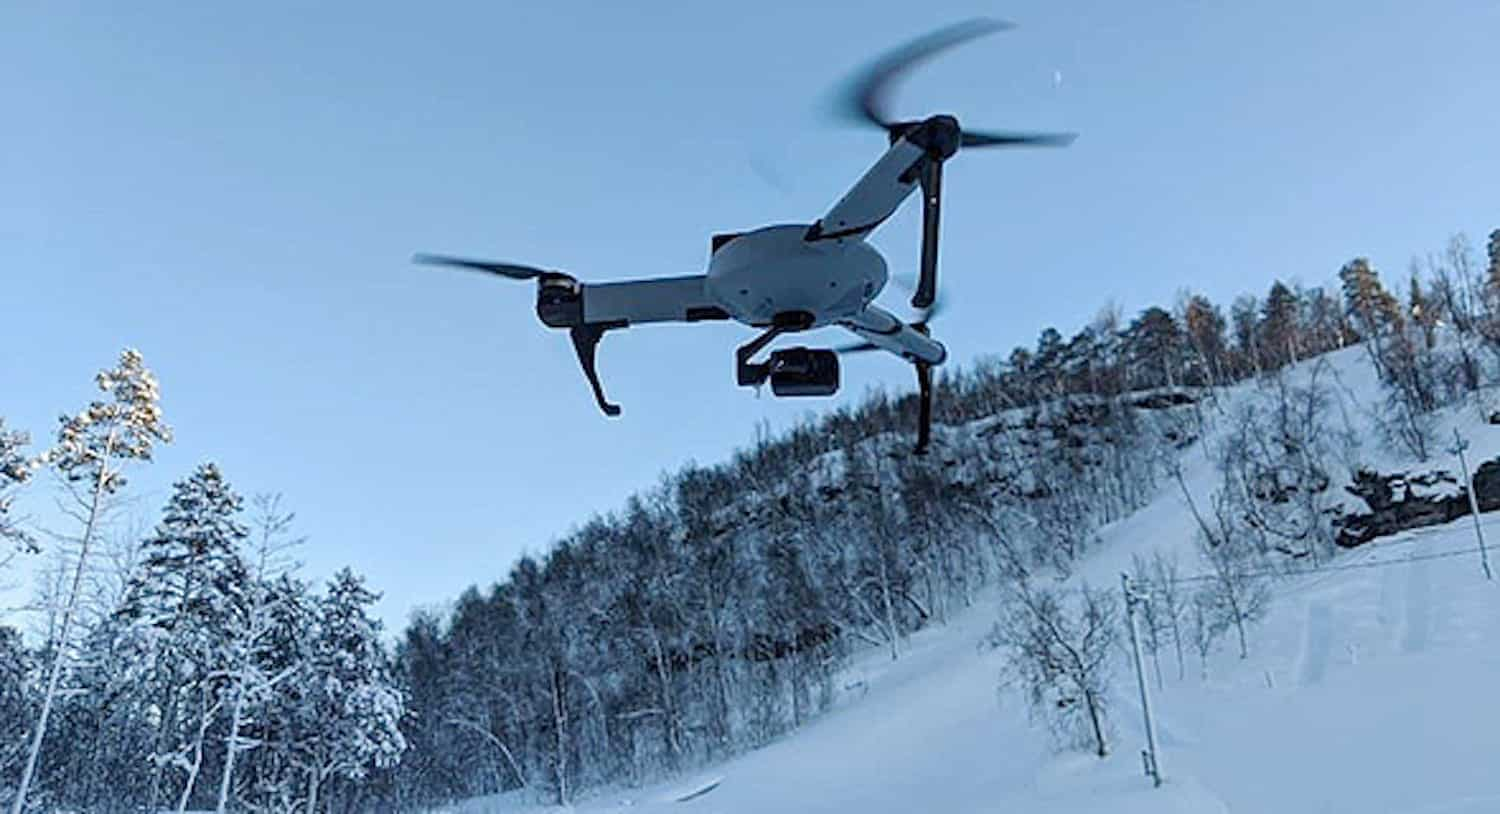 Atlas Dynamics' Atlas Pro drones will assist Norwegian rescue operations